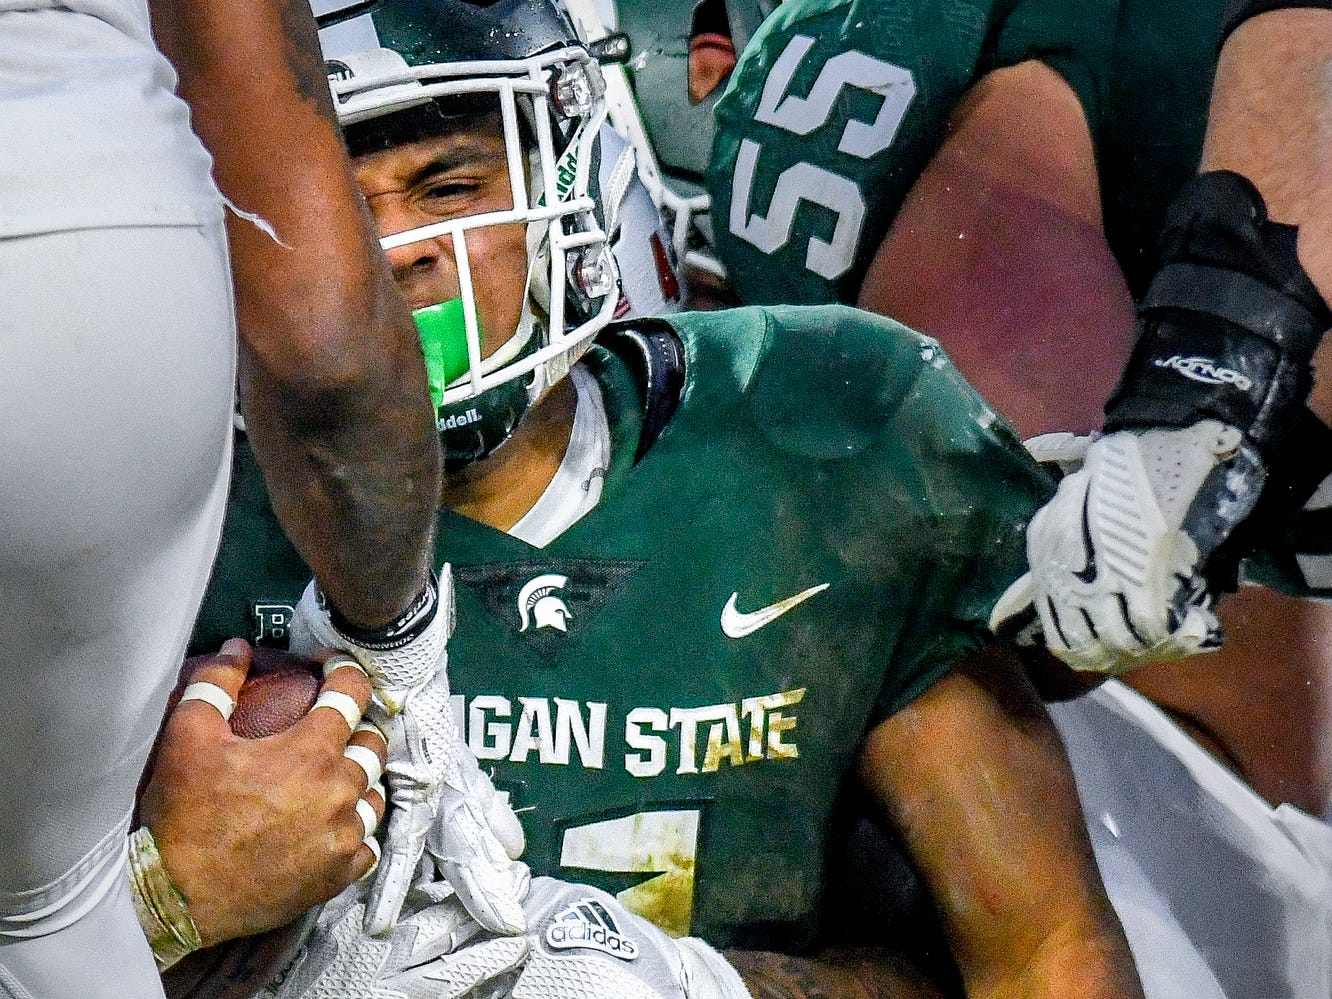 Michigan State's Connor Heyward looks to see if he made a first down at the end of a run during the first quarter on Saturday, Nov. 24, 2018, at Spartan Stadium in East Lansing.